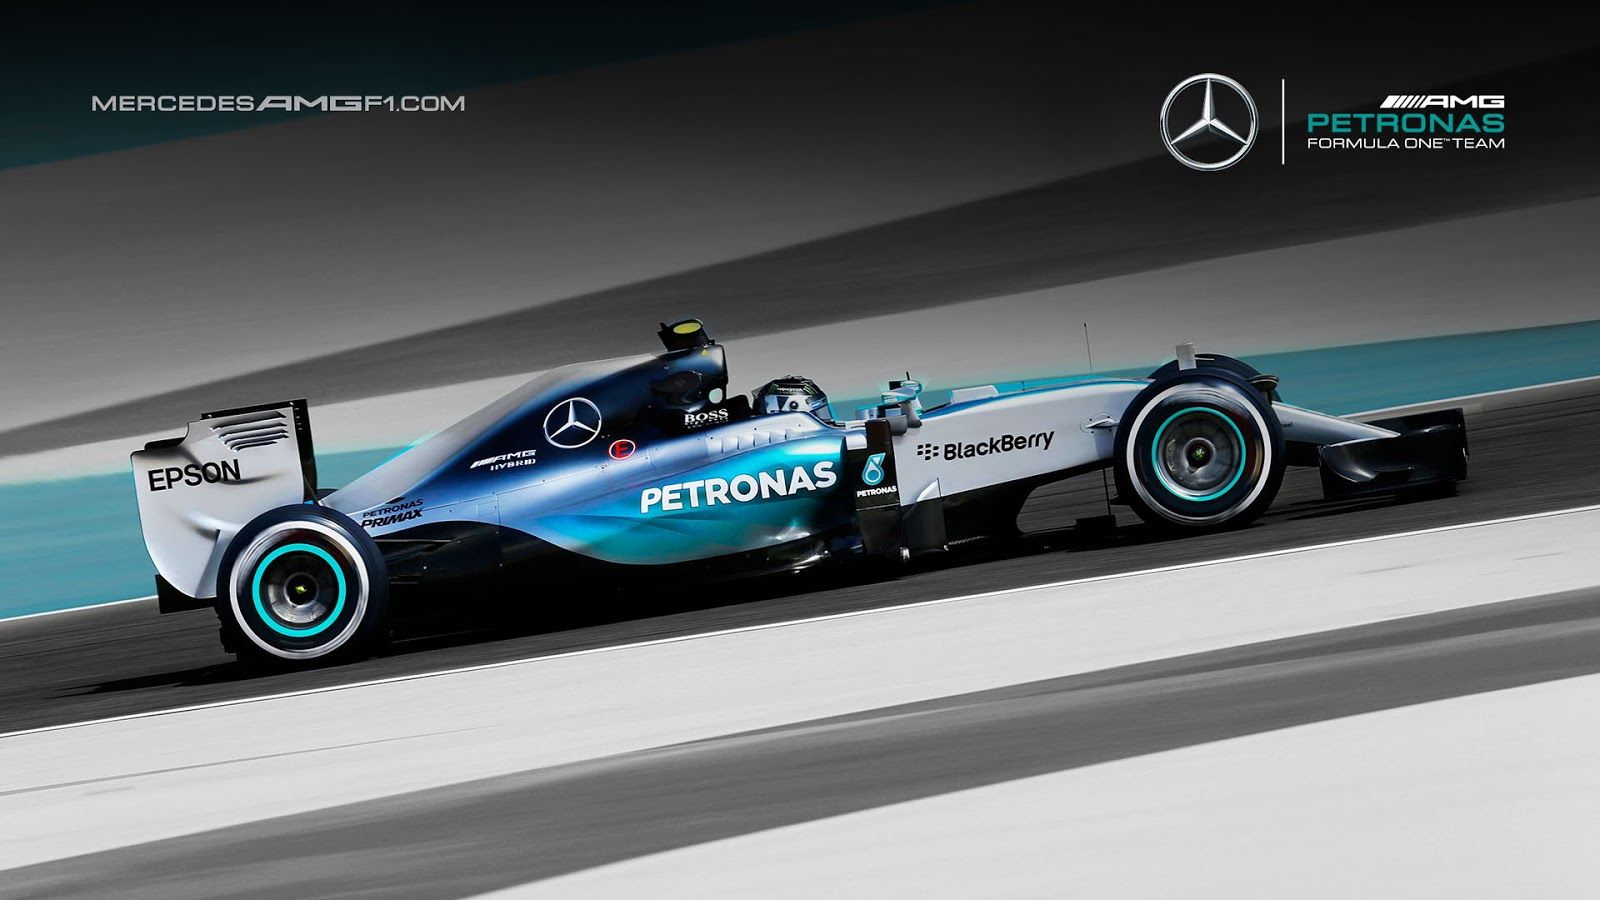 f1 mercedes wallpaper desktop background #c5m | cars | pinterest